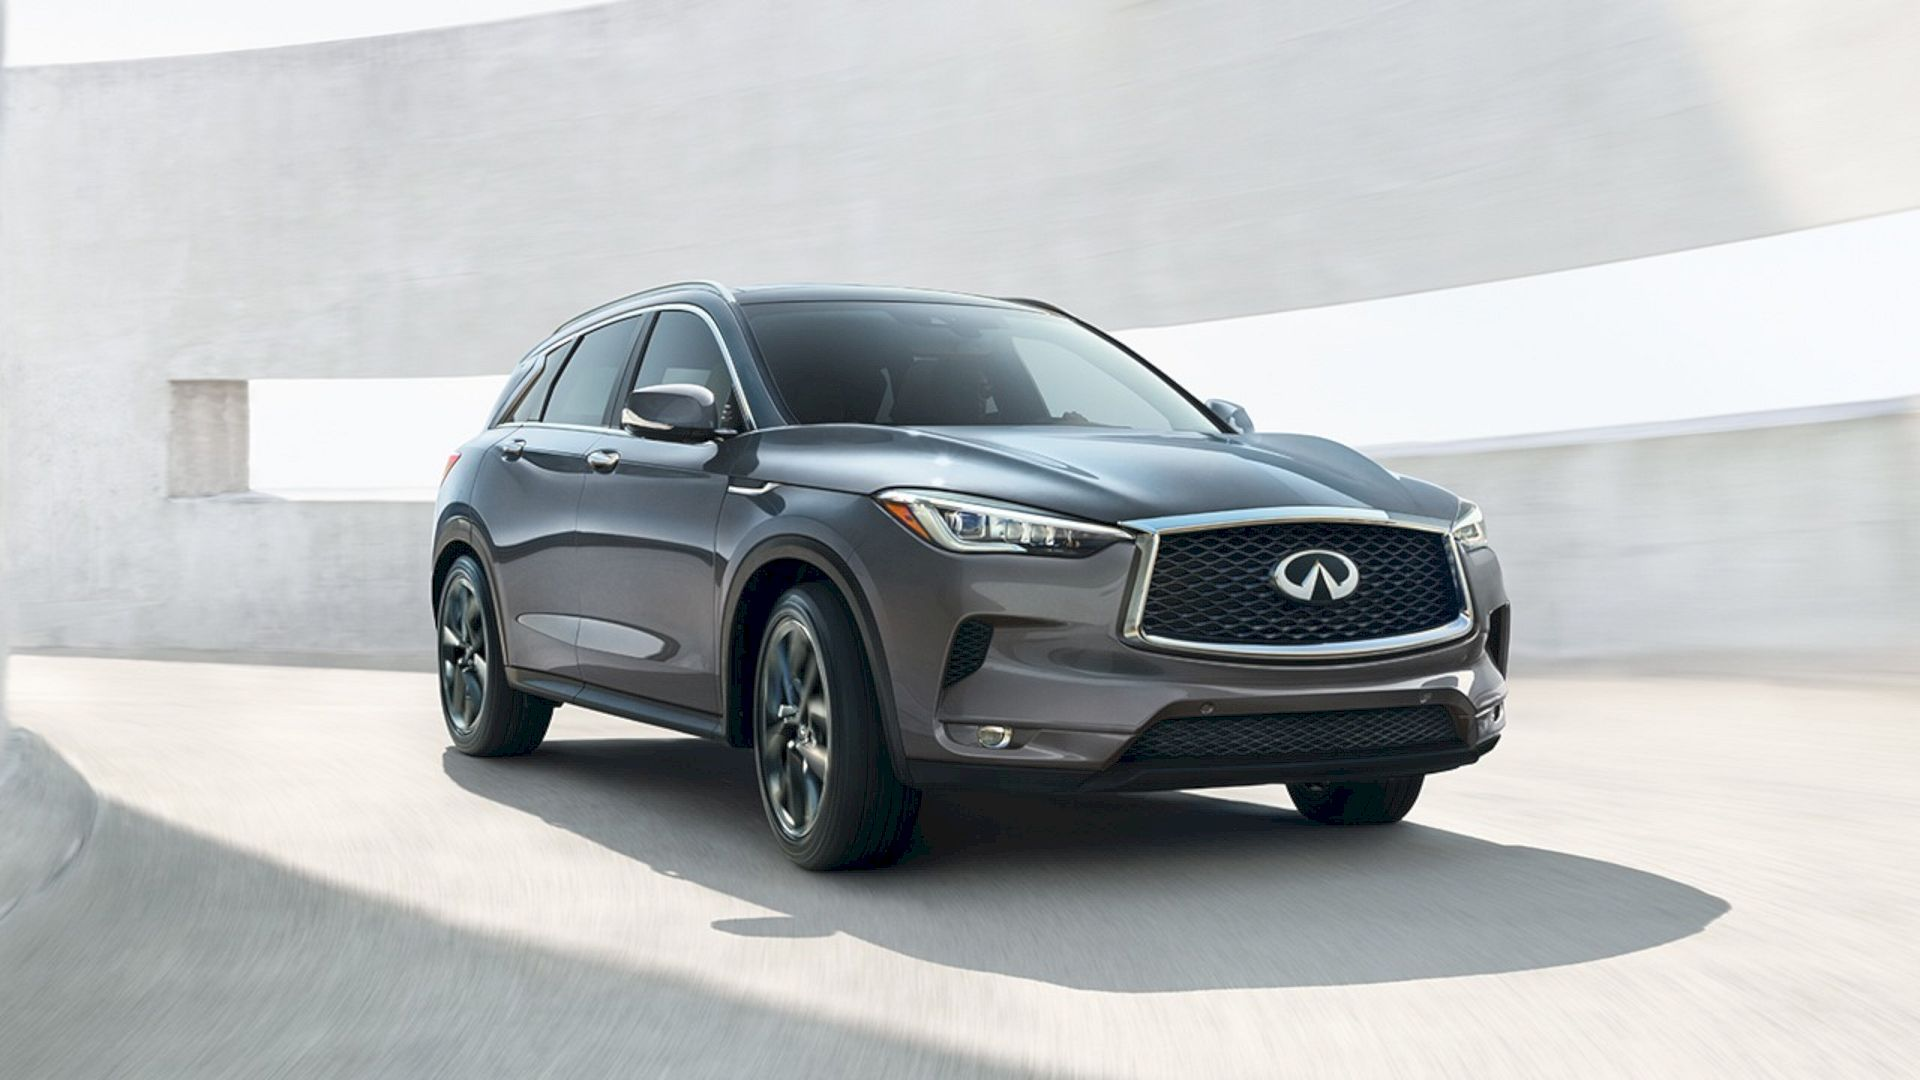 The AllNew 2019 INFINITI QX50 The Journey Within